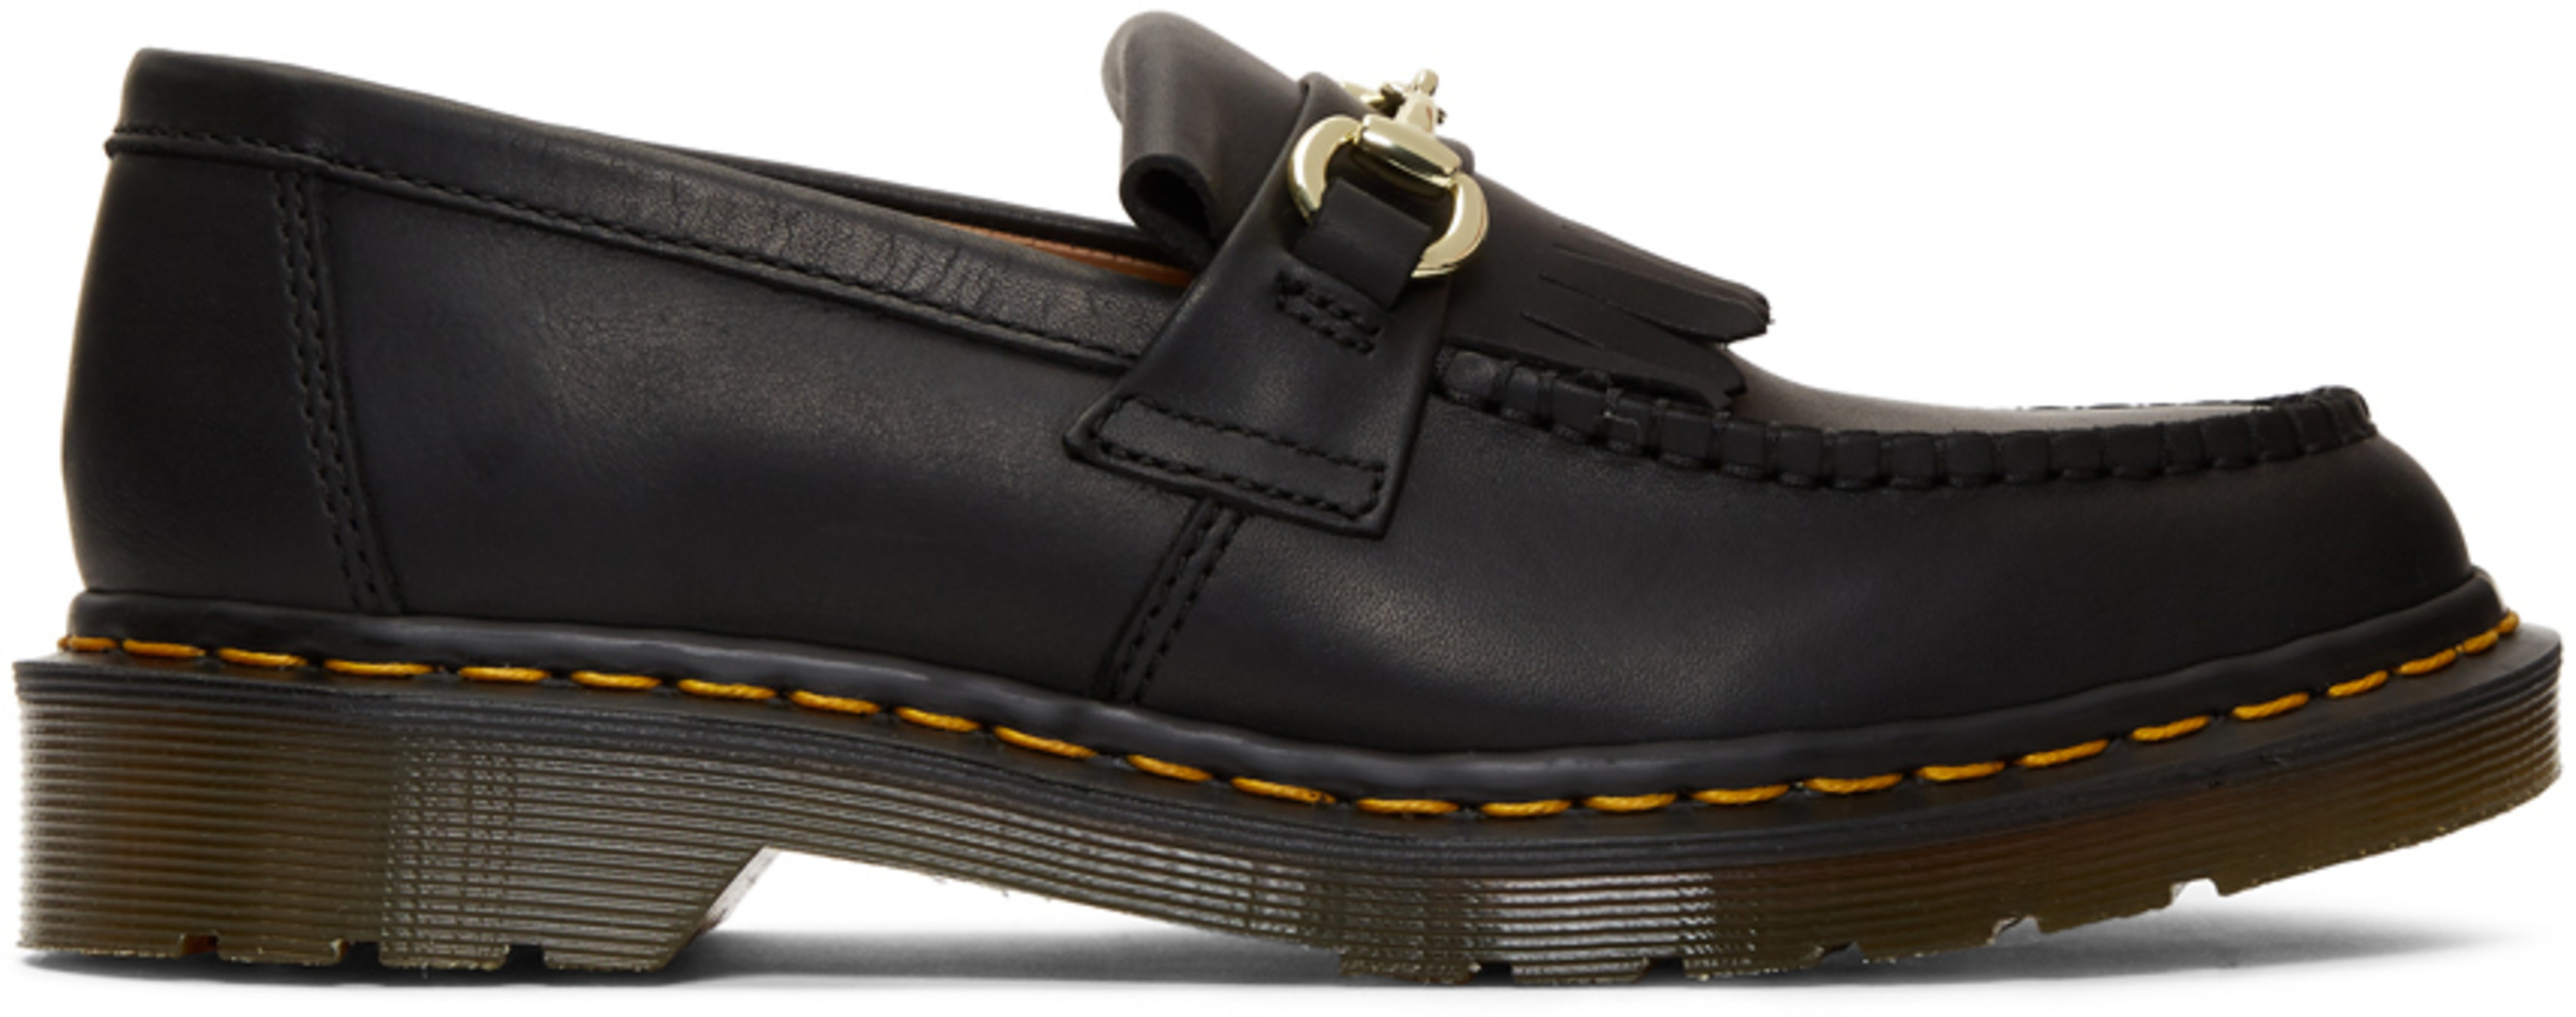 195490ebead Dr. Martens for Men SS19 Collection